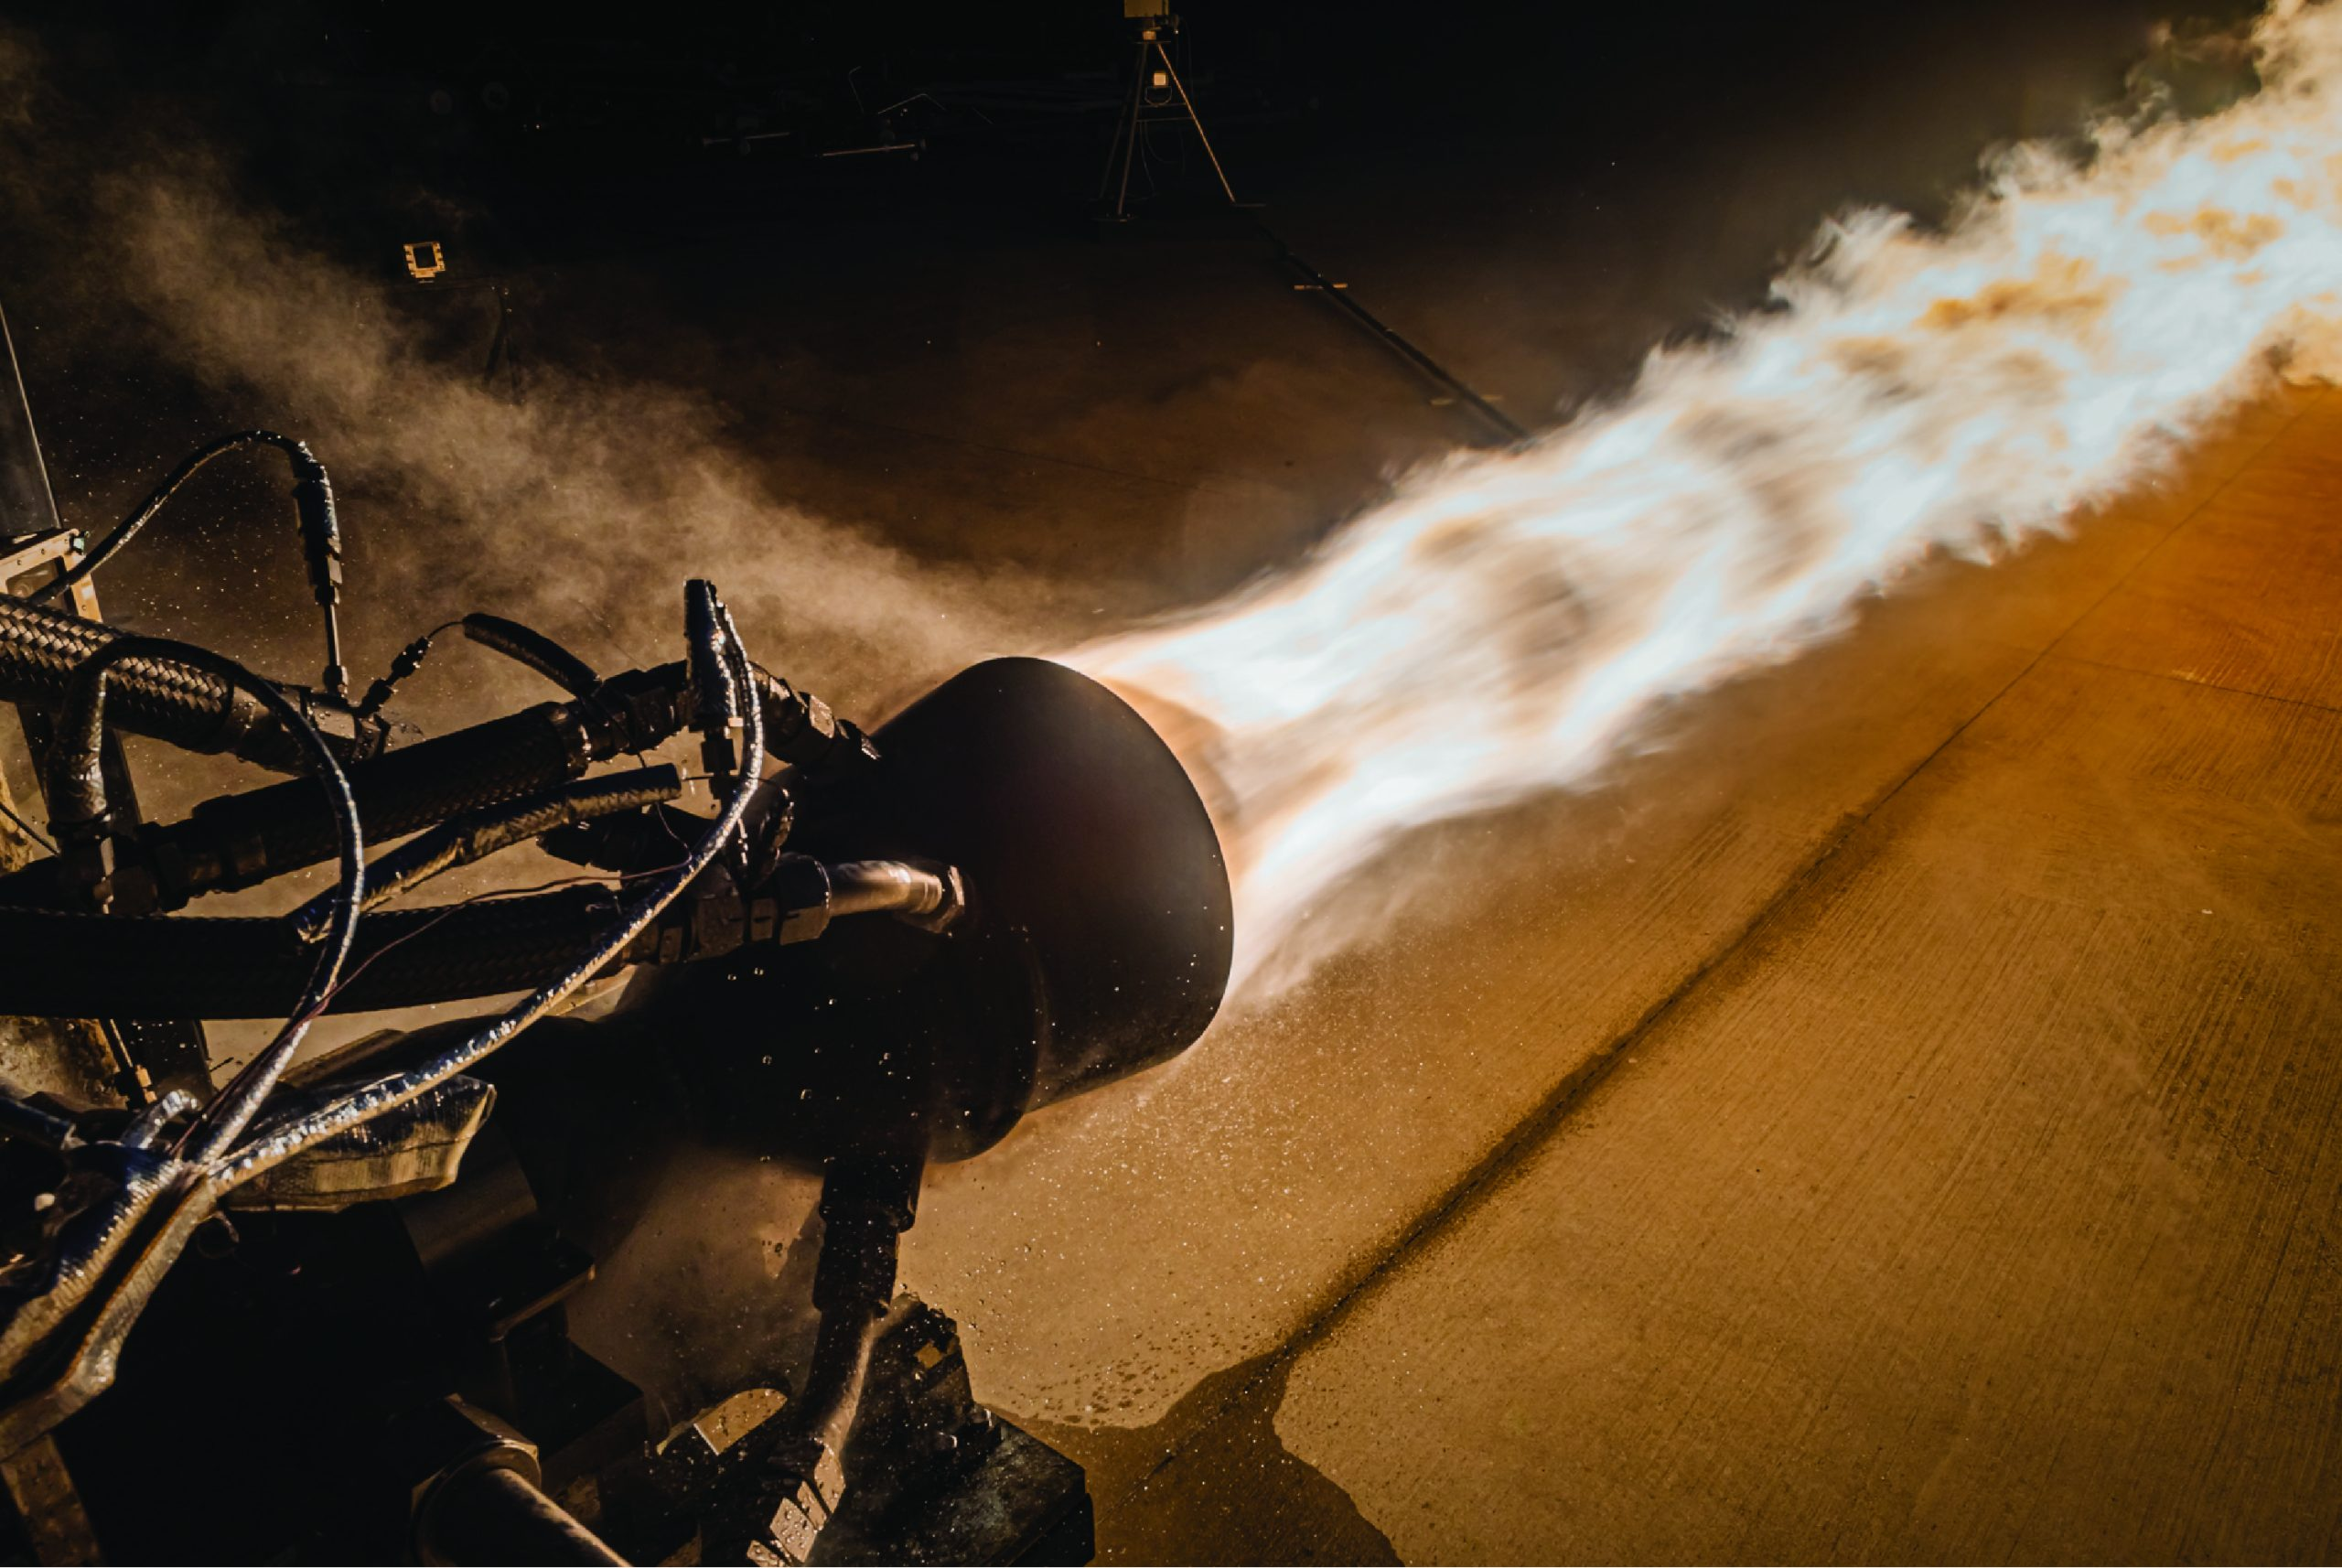 Launcher conducts a hot fire test for its 3D-printed Engine-2 rocket engine in the E Test Complex at NASA's Stennis Space Center. Photo via Launcher/John Kraus Photography.